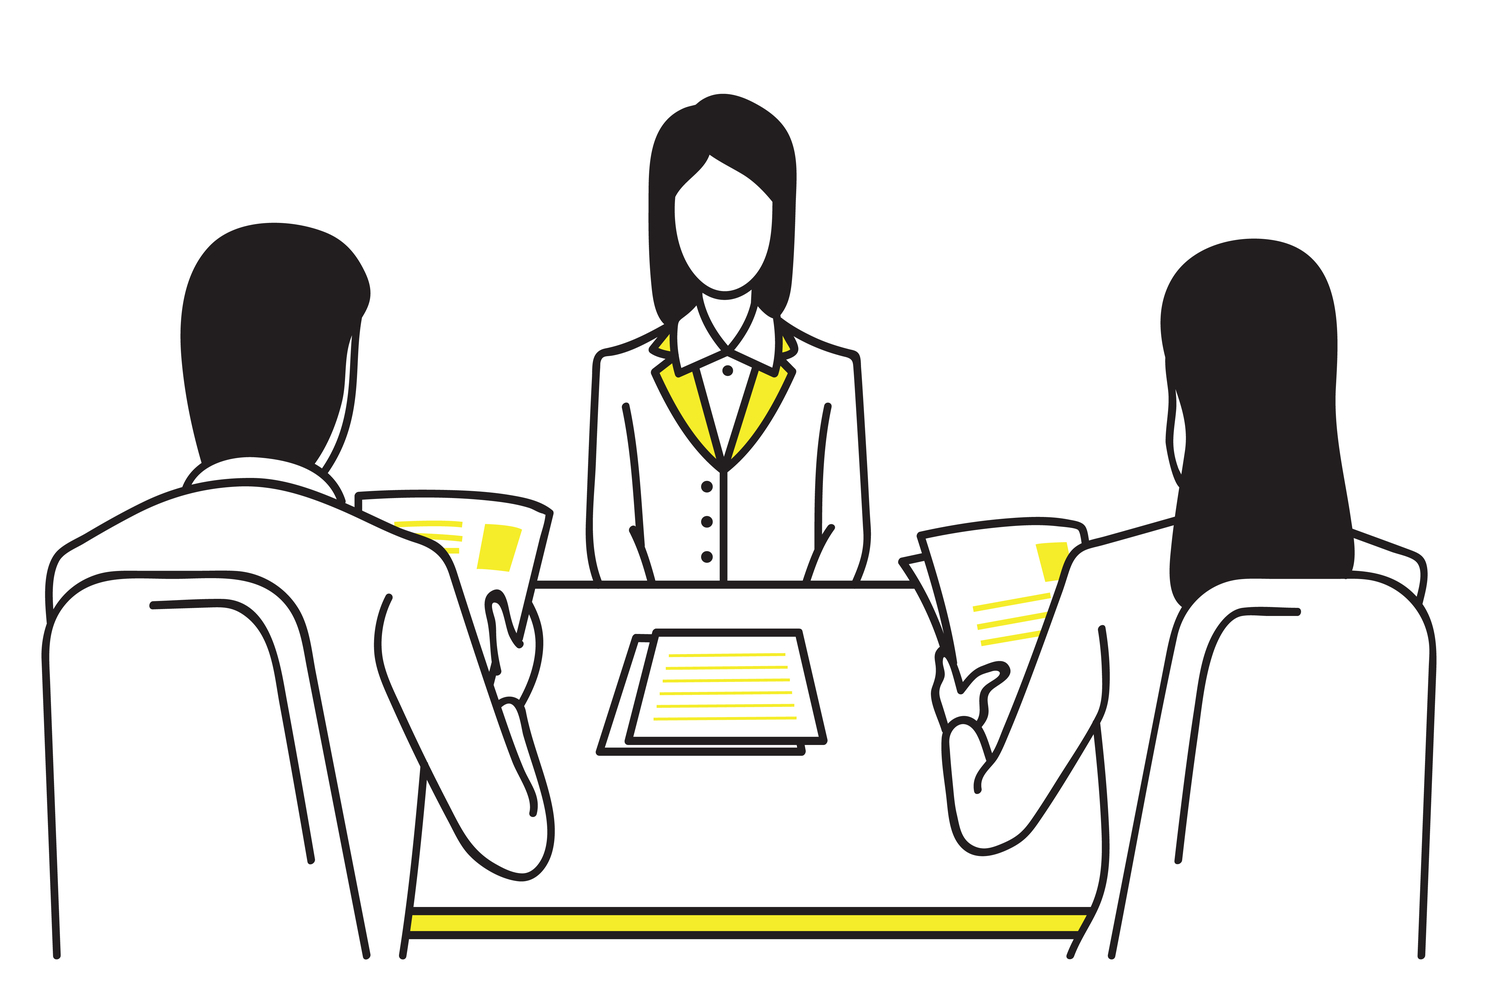 When Hiring, The Interview Is The Least Important Part of the Process. Here Are 5 Ways To Really Get To Know A Candidate.